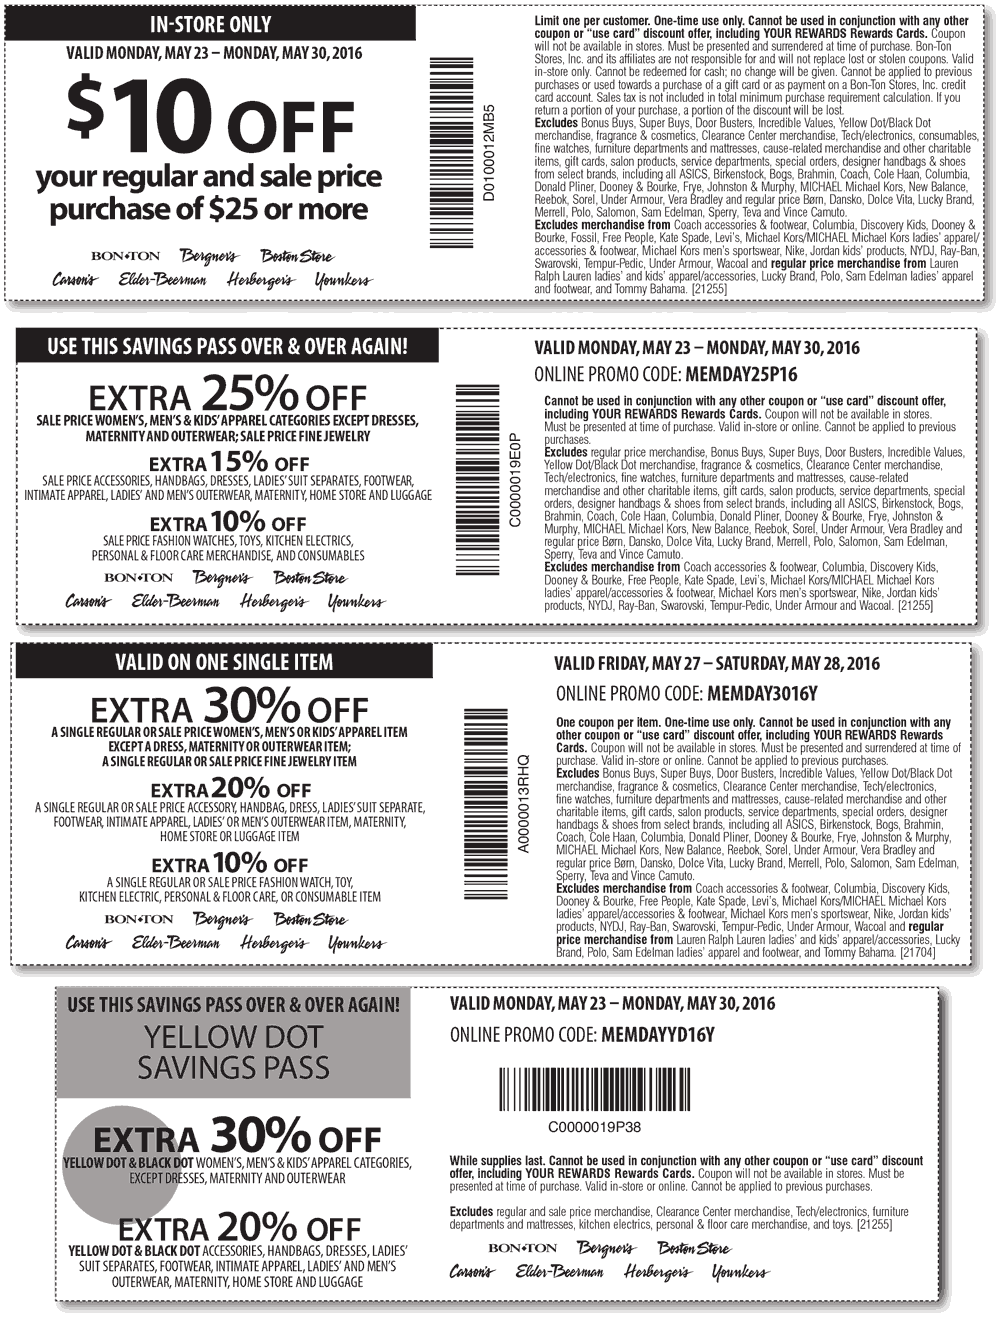 Carsons Coupon October 2016 $10 off $25 & more at Carsons, Bon Ton & sister stores, or 25% online via promo code MEMDAY25P16